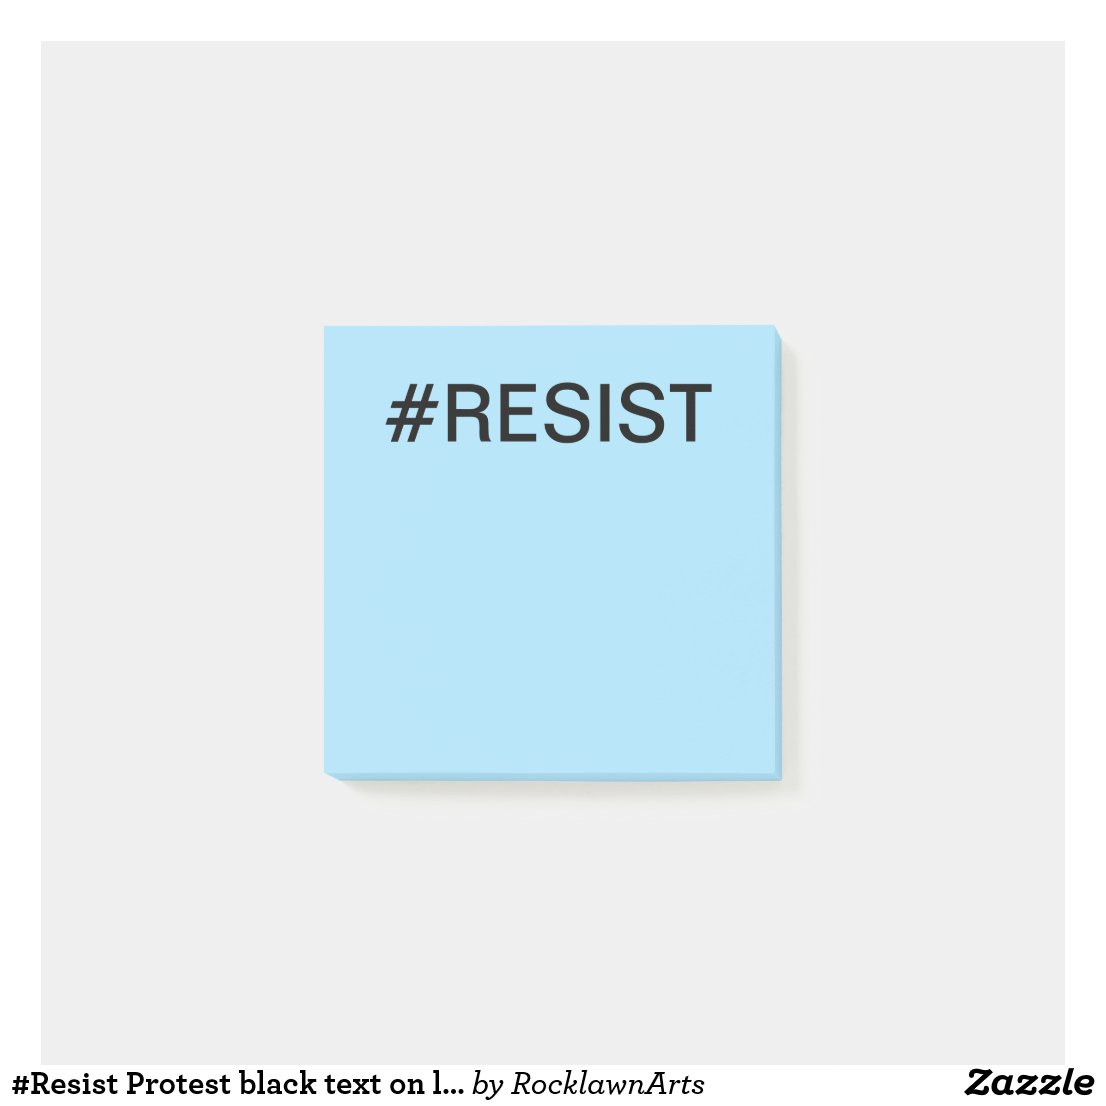 #Resist Protest black text on light blue Post-it Notes